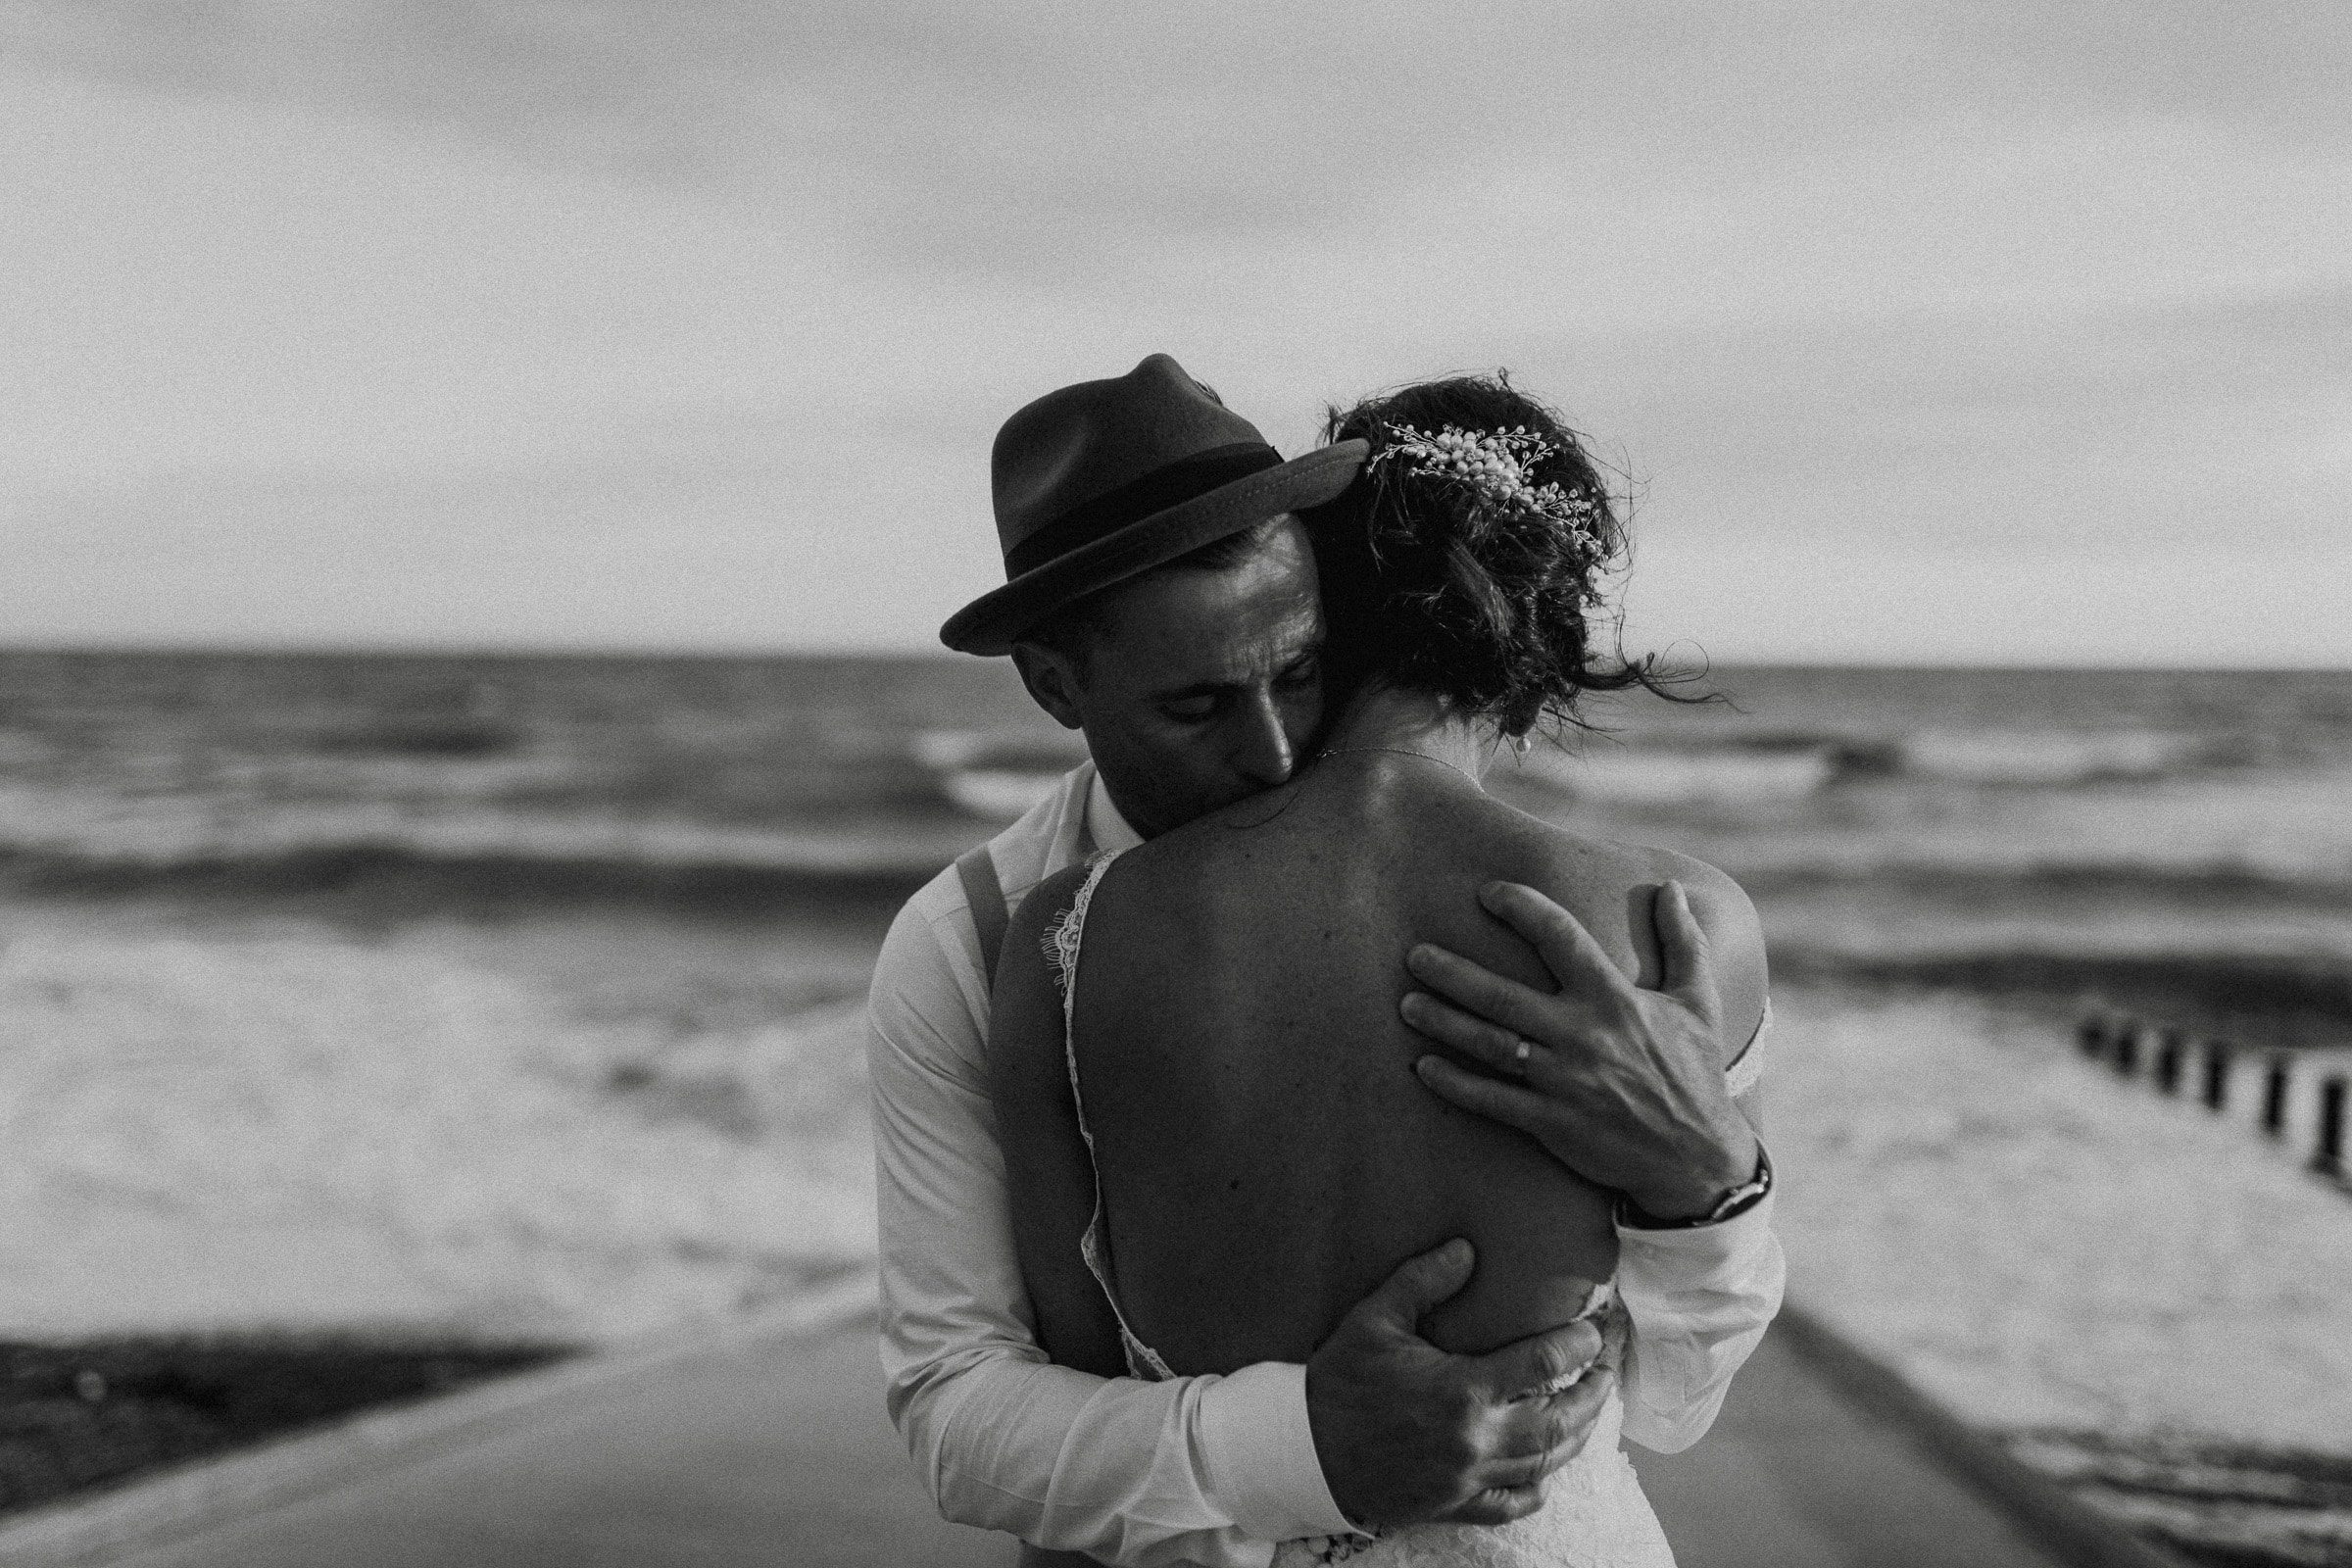 Groom embracing Bride at St Bees Beach Cumbria by featured Lake district and Cumbria wedding photographer Joshua Wyborn